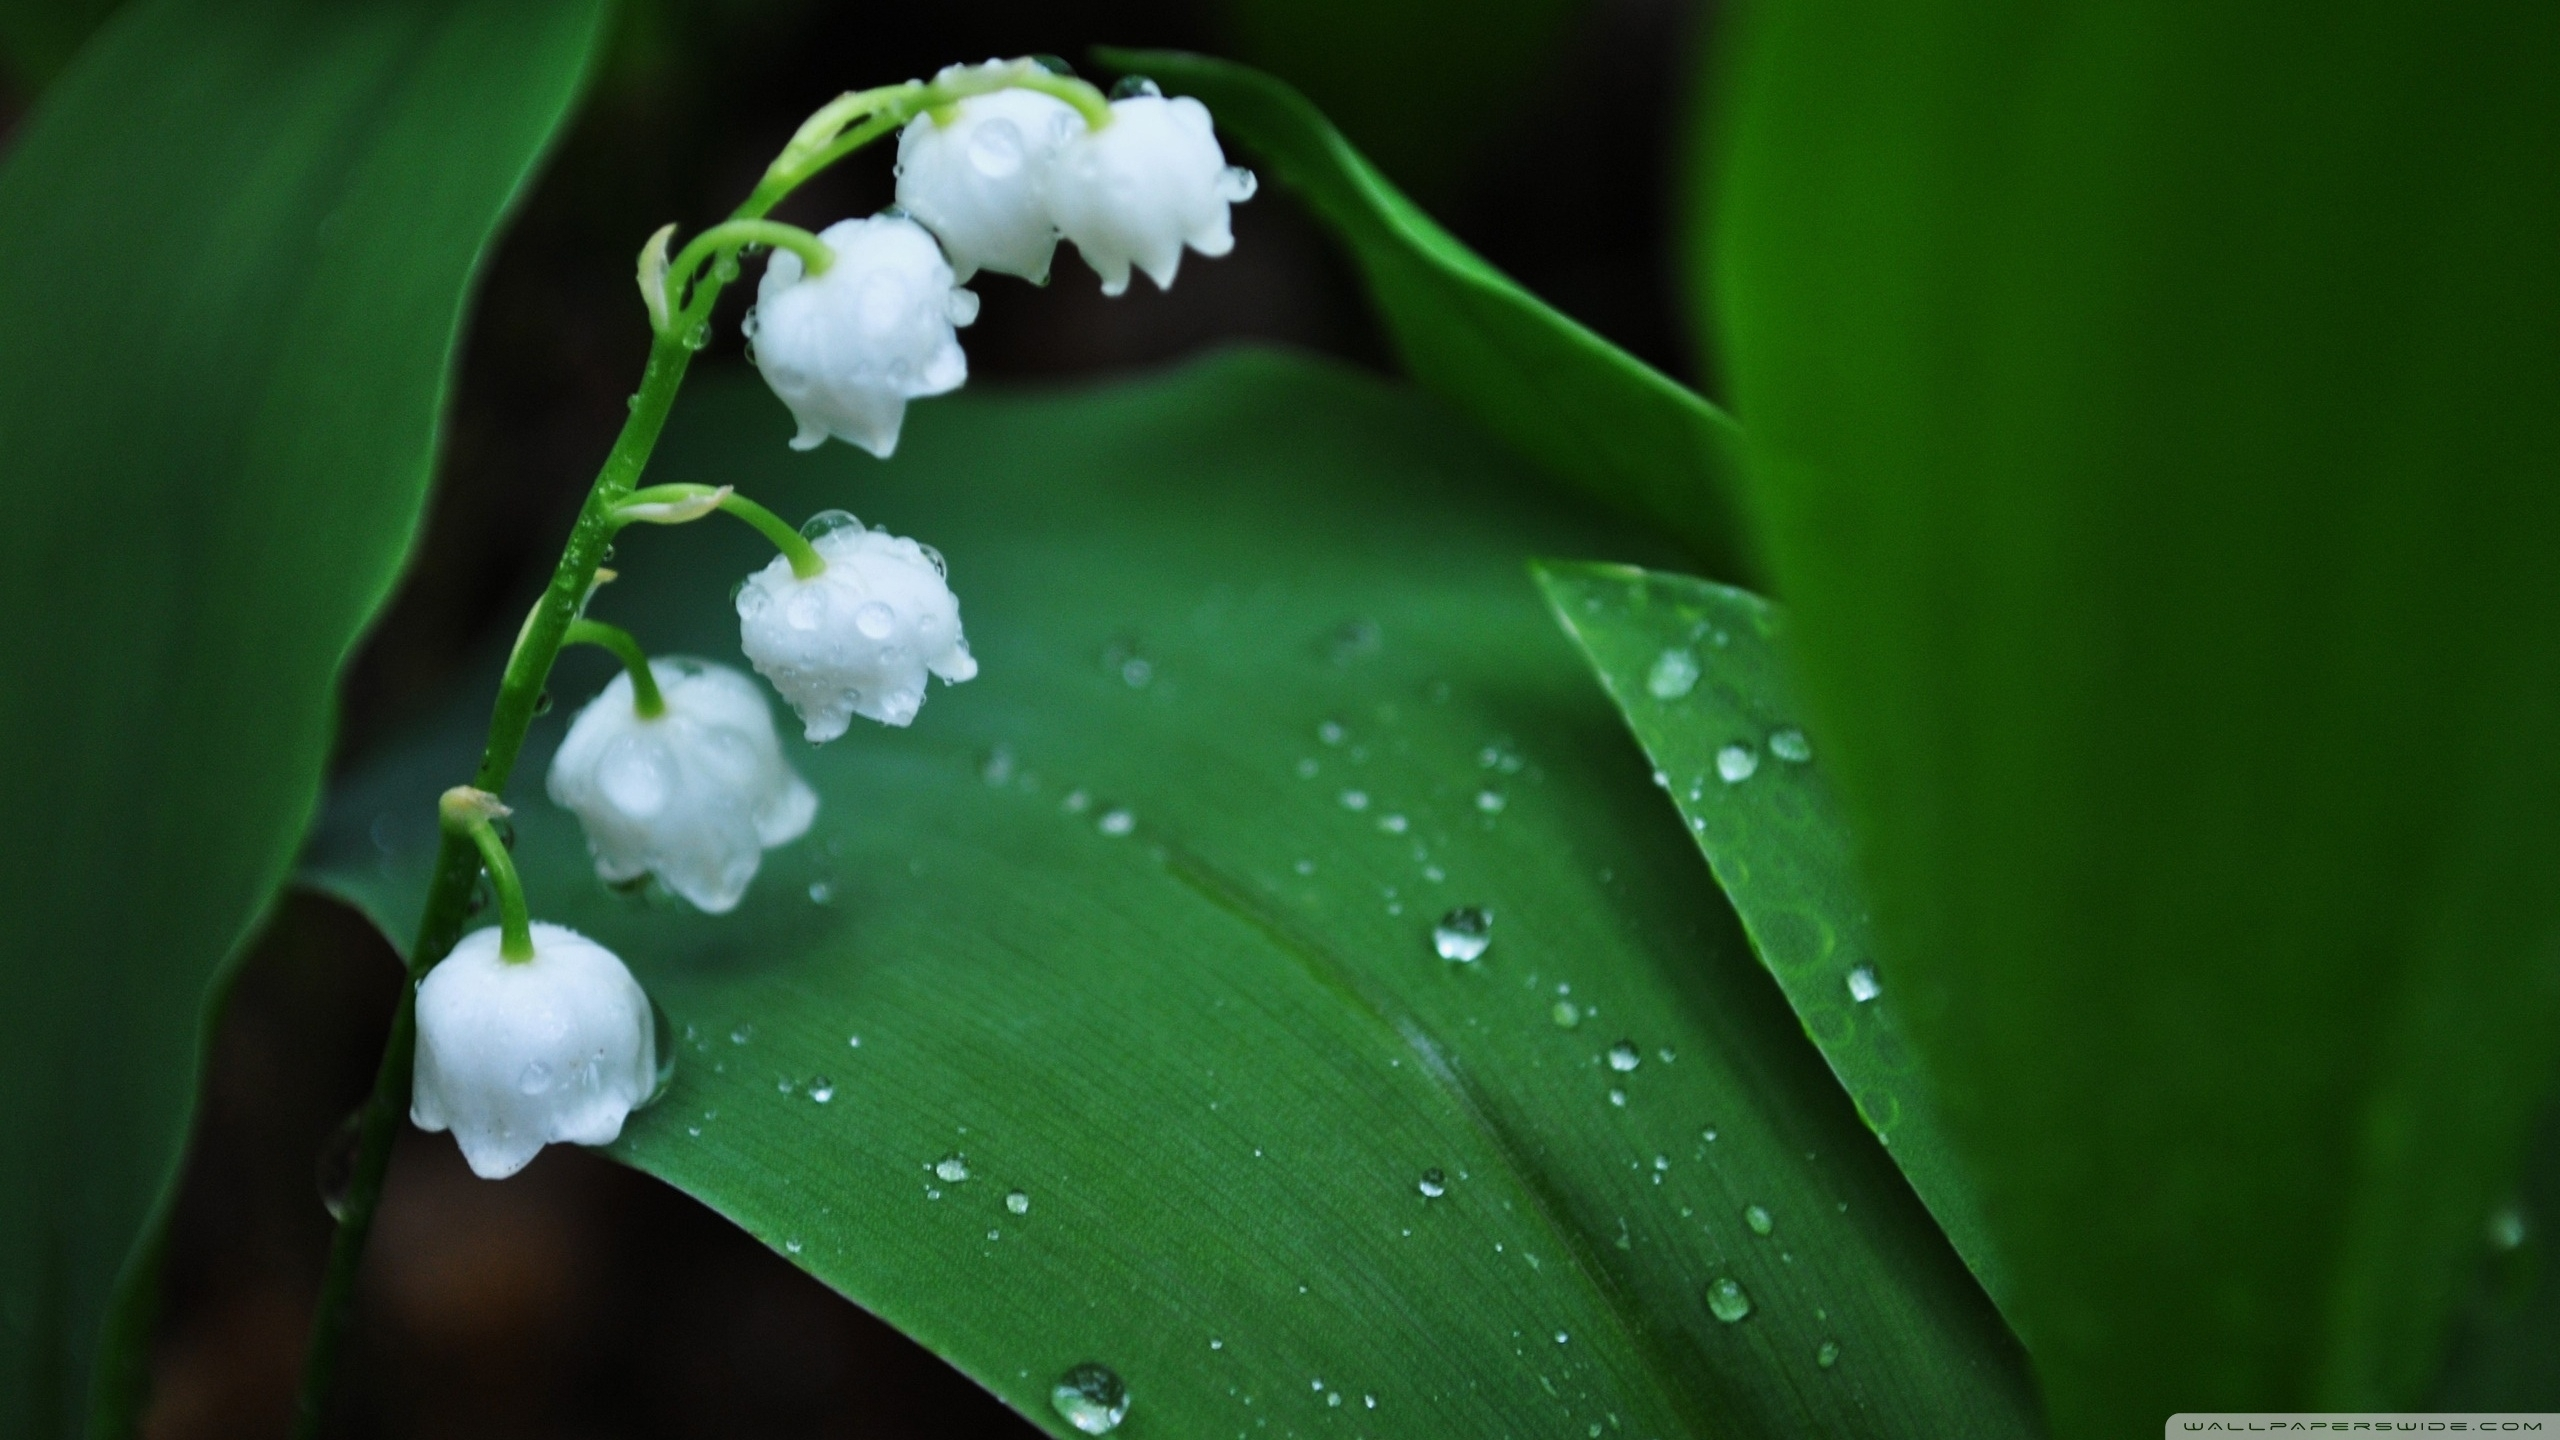 lily of the valley ❤ 4k hd desktop wallpaper for 4k ultra hd tv